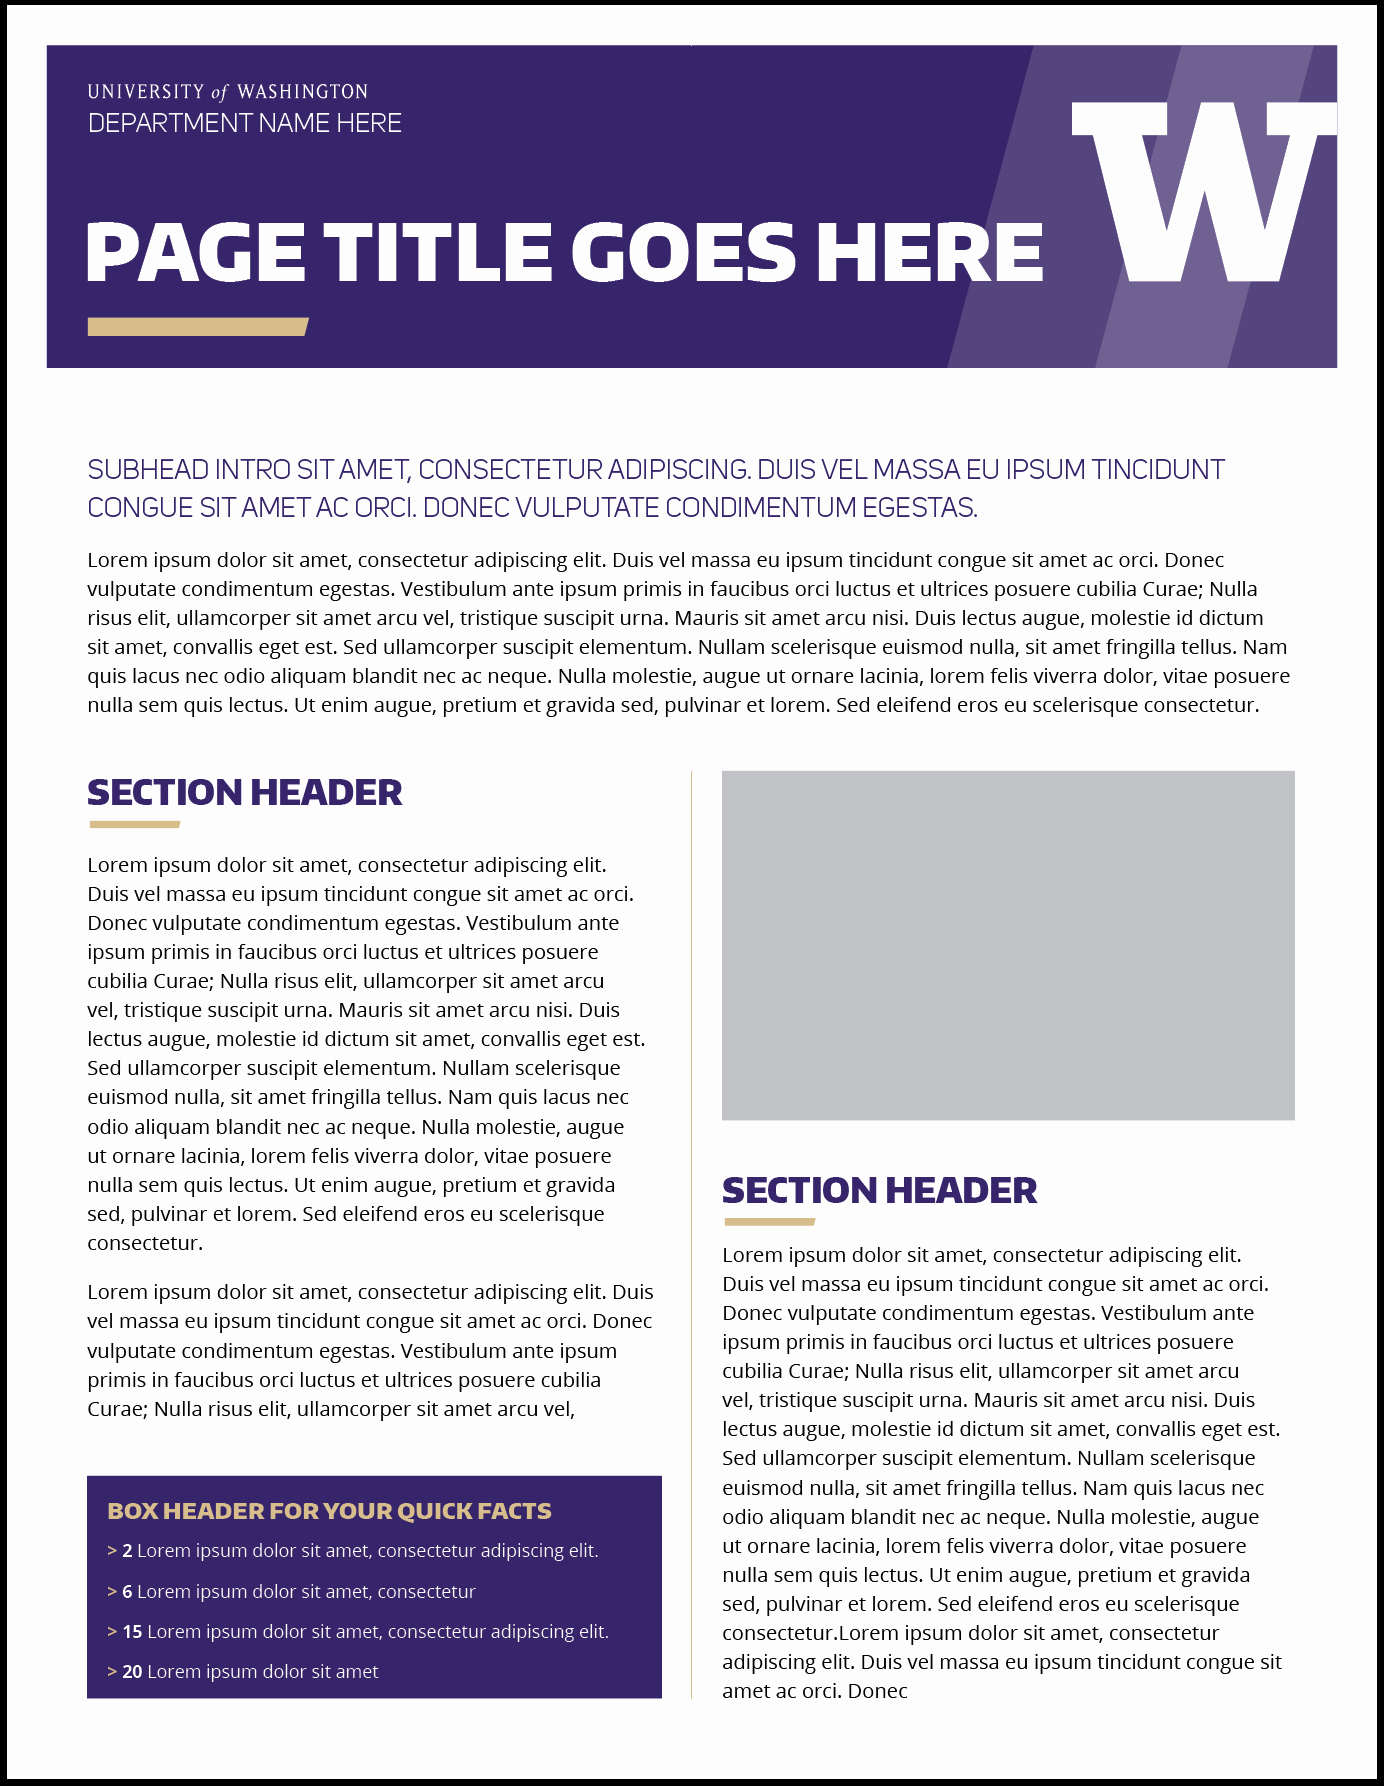 Fact Sheet Templates Microsoft Word Inspirational Fact Sheet